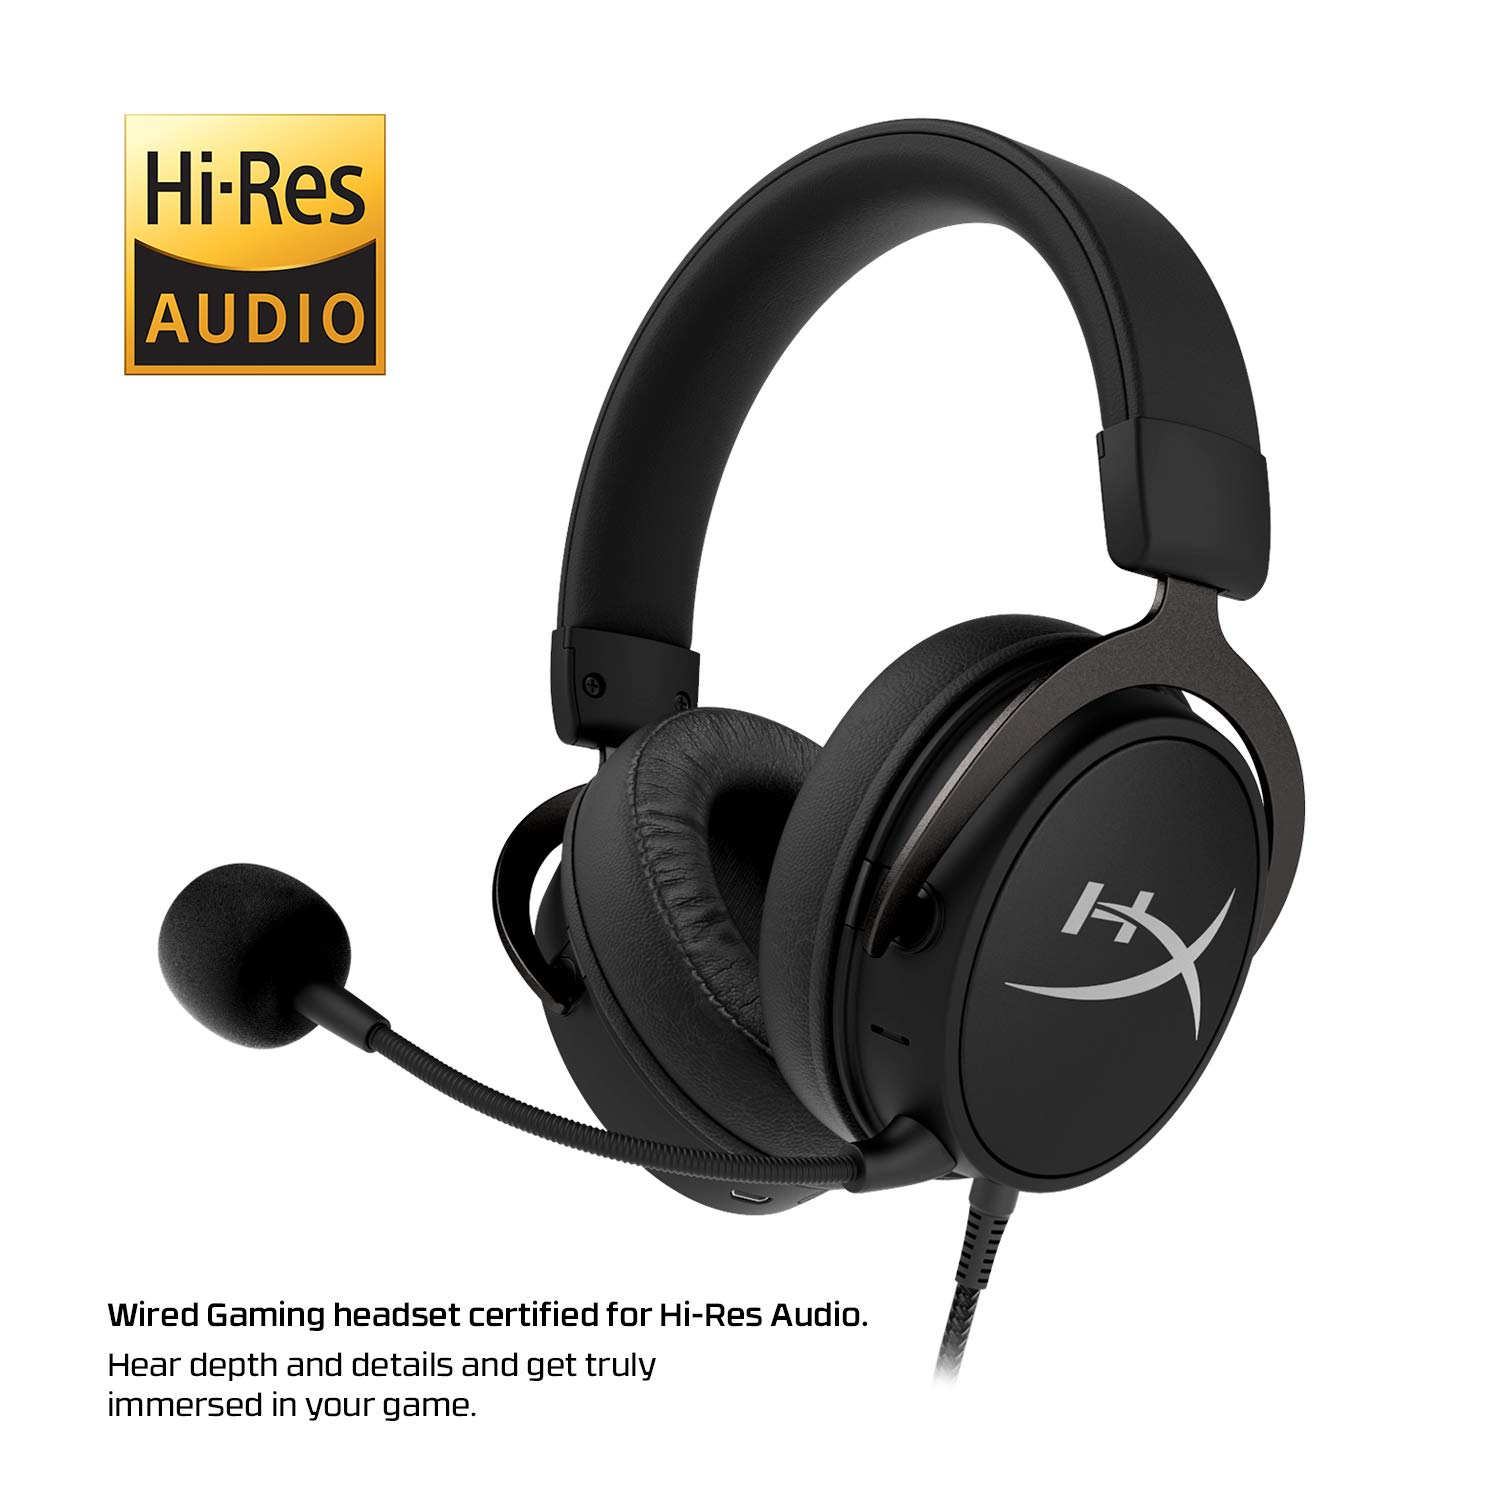 HyperX Cloud Mix Wired Gaming Headset + Bluetooth Option - Game and Go - Detachable Microphone - Signature Comfort - Lightweight - Multi Platform Compatible (HX-HSCAM-GM) by HyperX